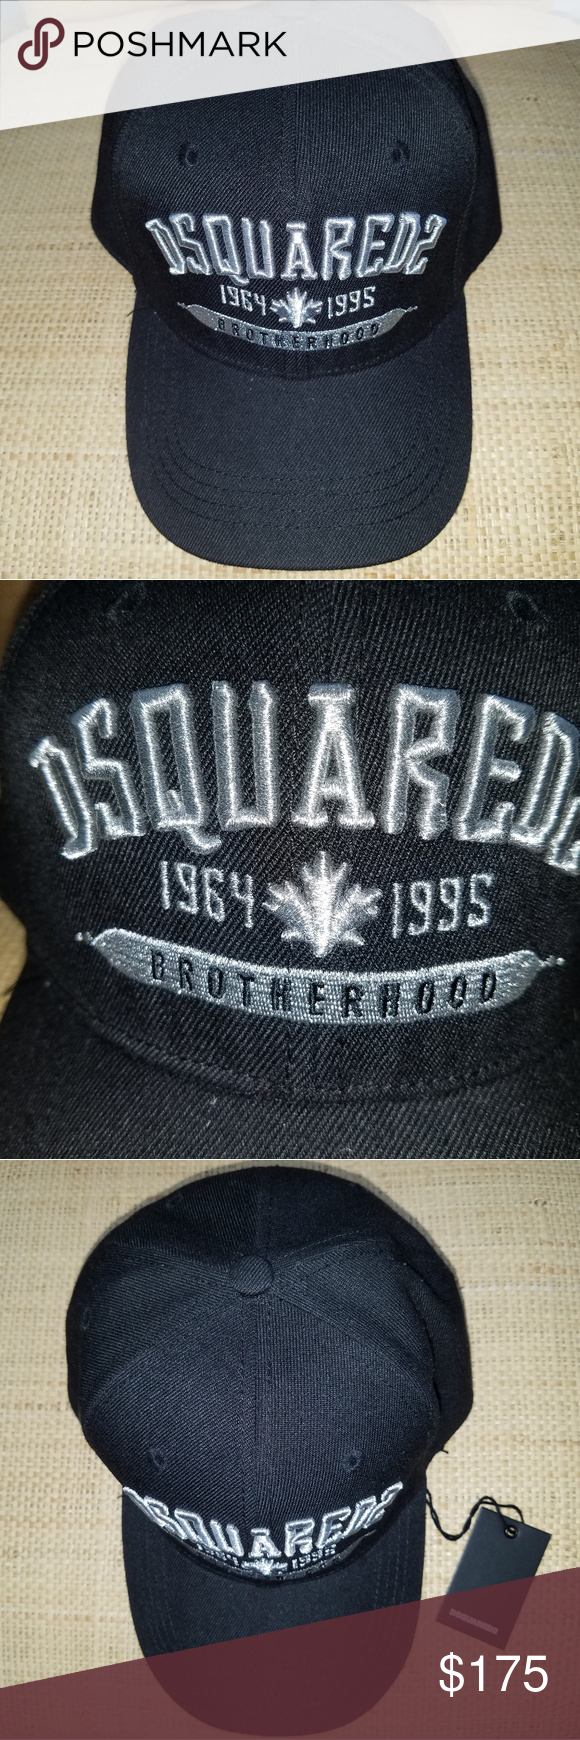 "New Mens ""Dsquared2"" Cap New,Awesome ""Dsquared2"" Baseball"